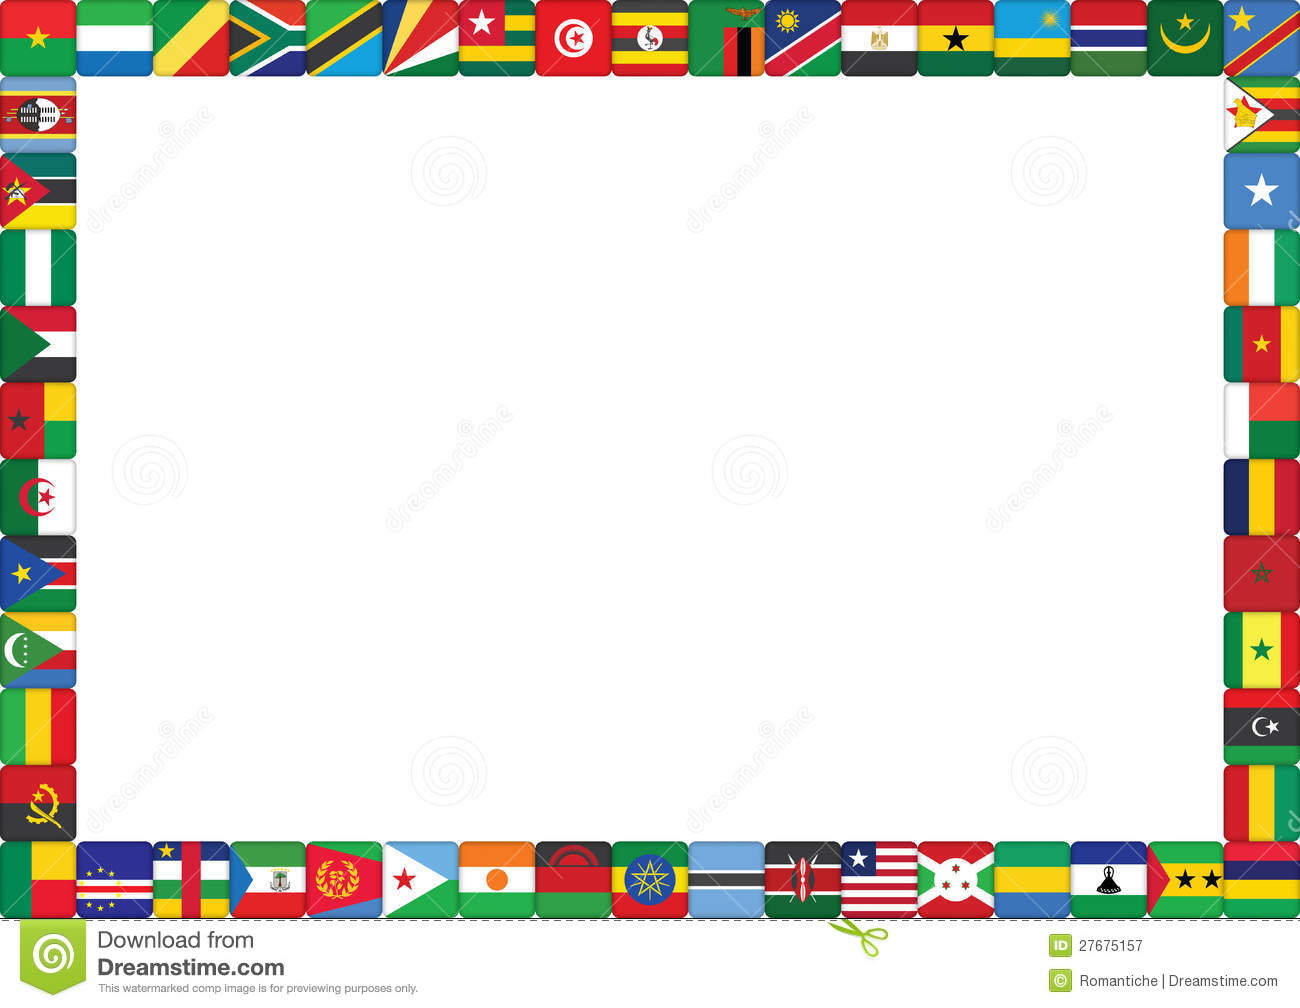 Africa clipart border, Africa border Transparent FREE for.